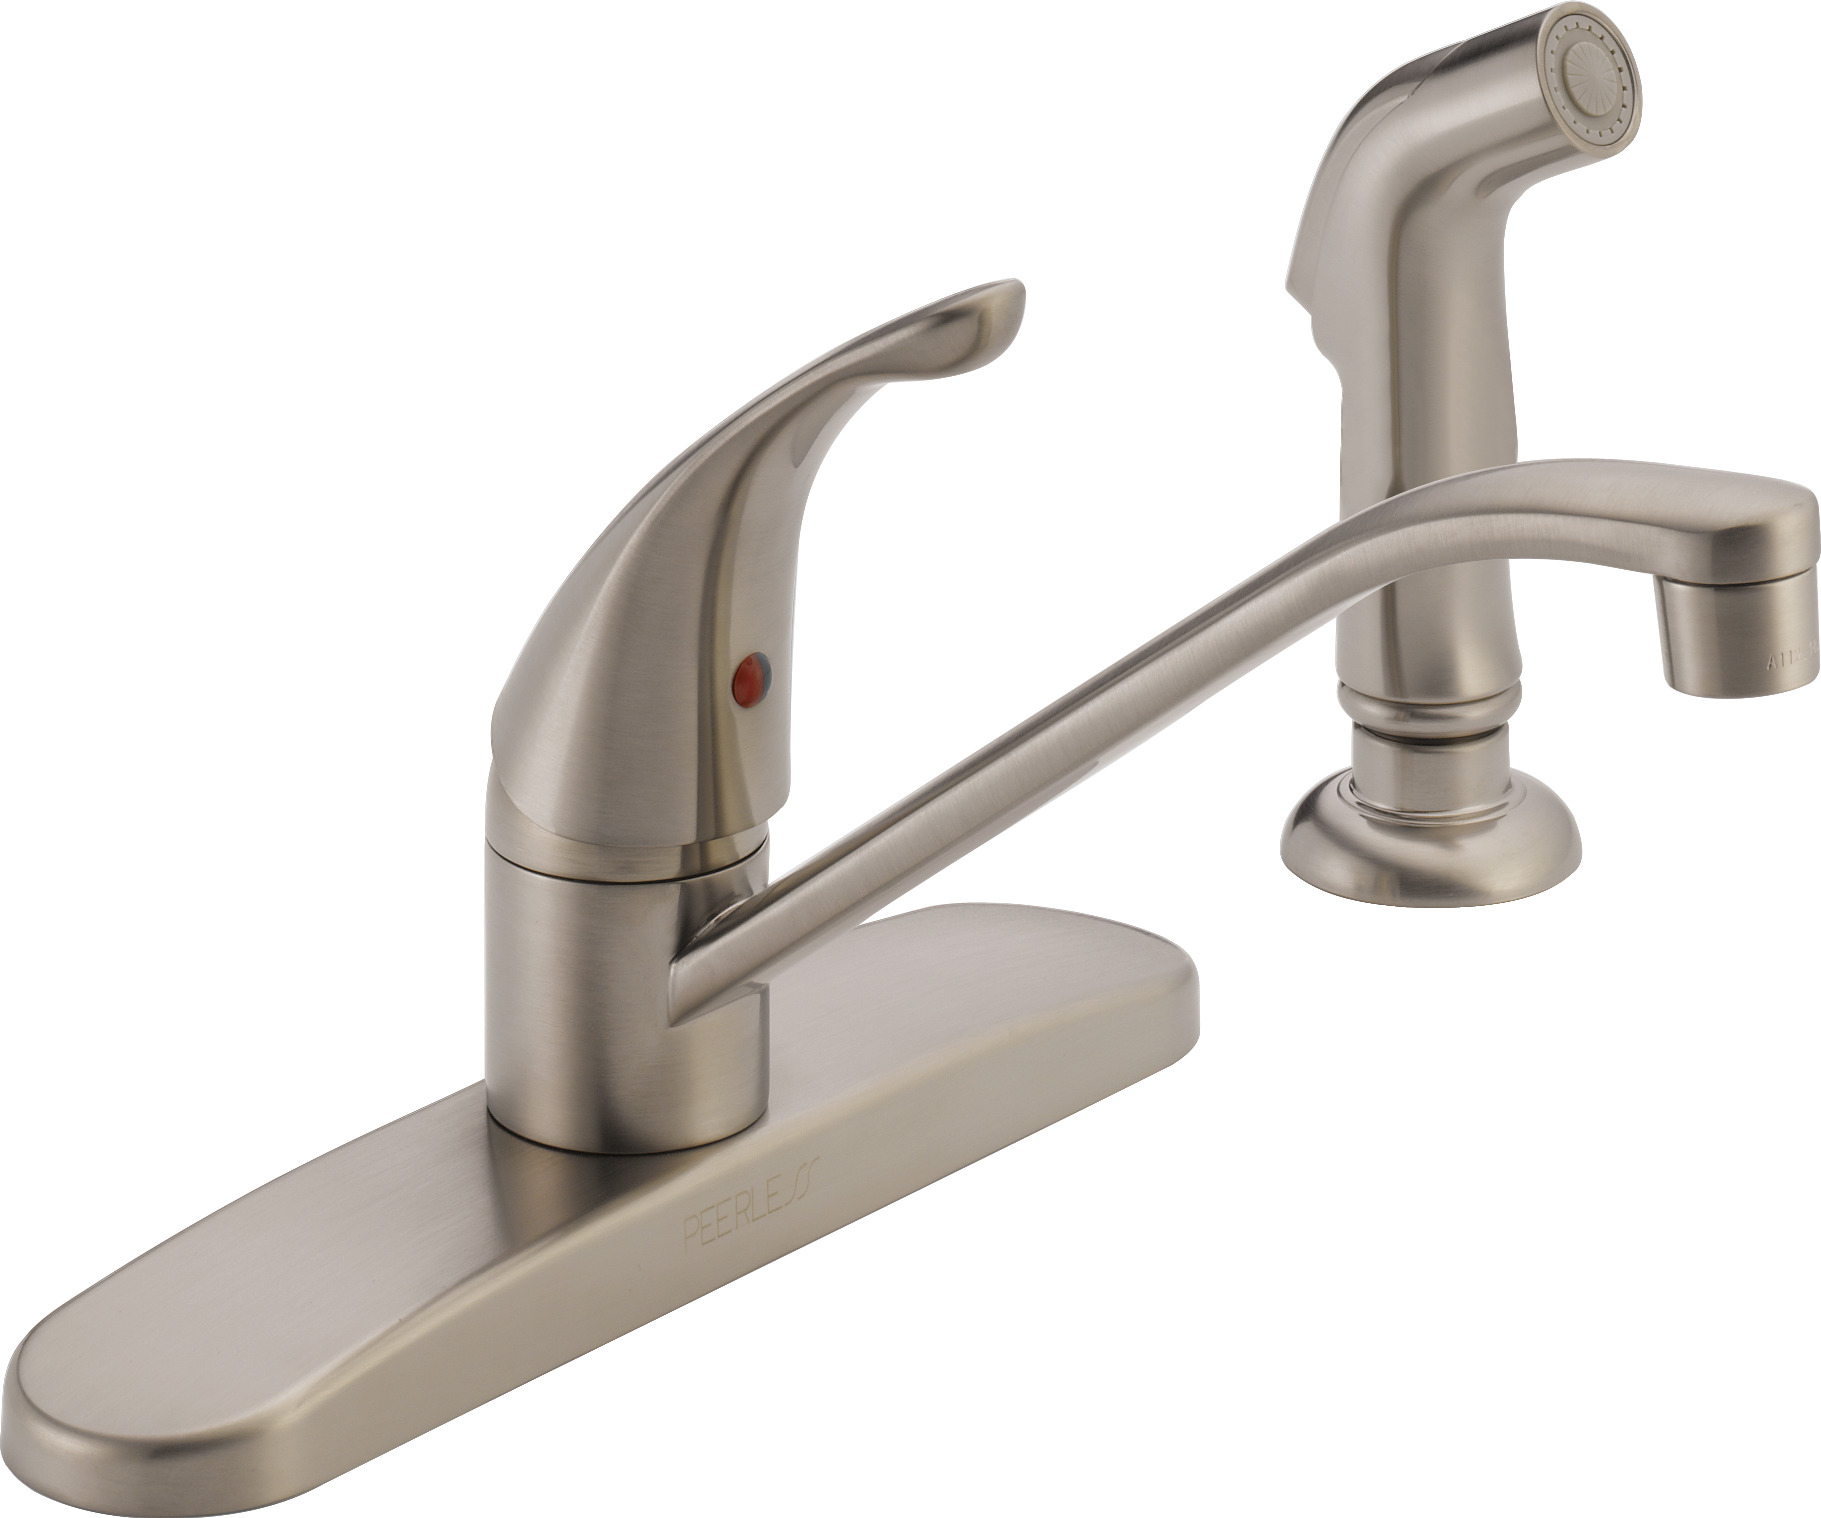 stainless kitchen faucet aid 600 peerless single handle side spray walmart com